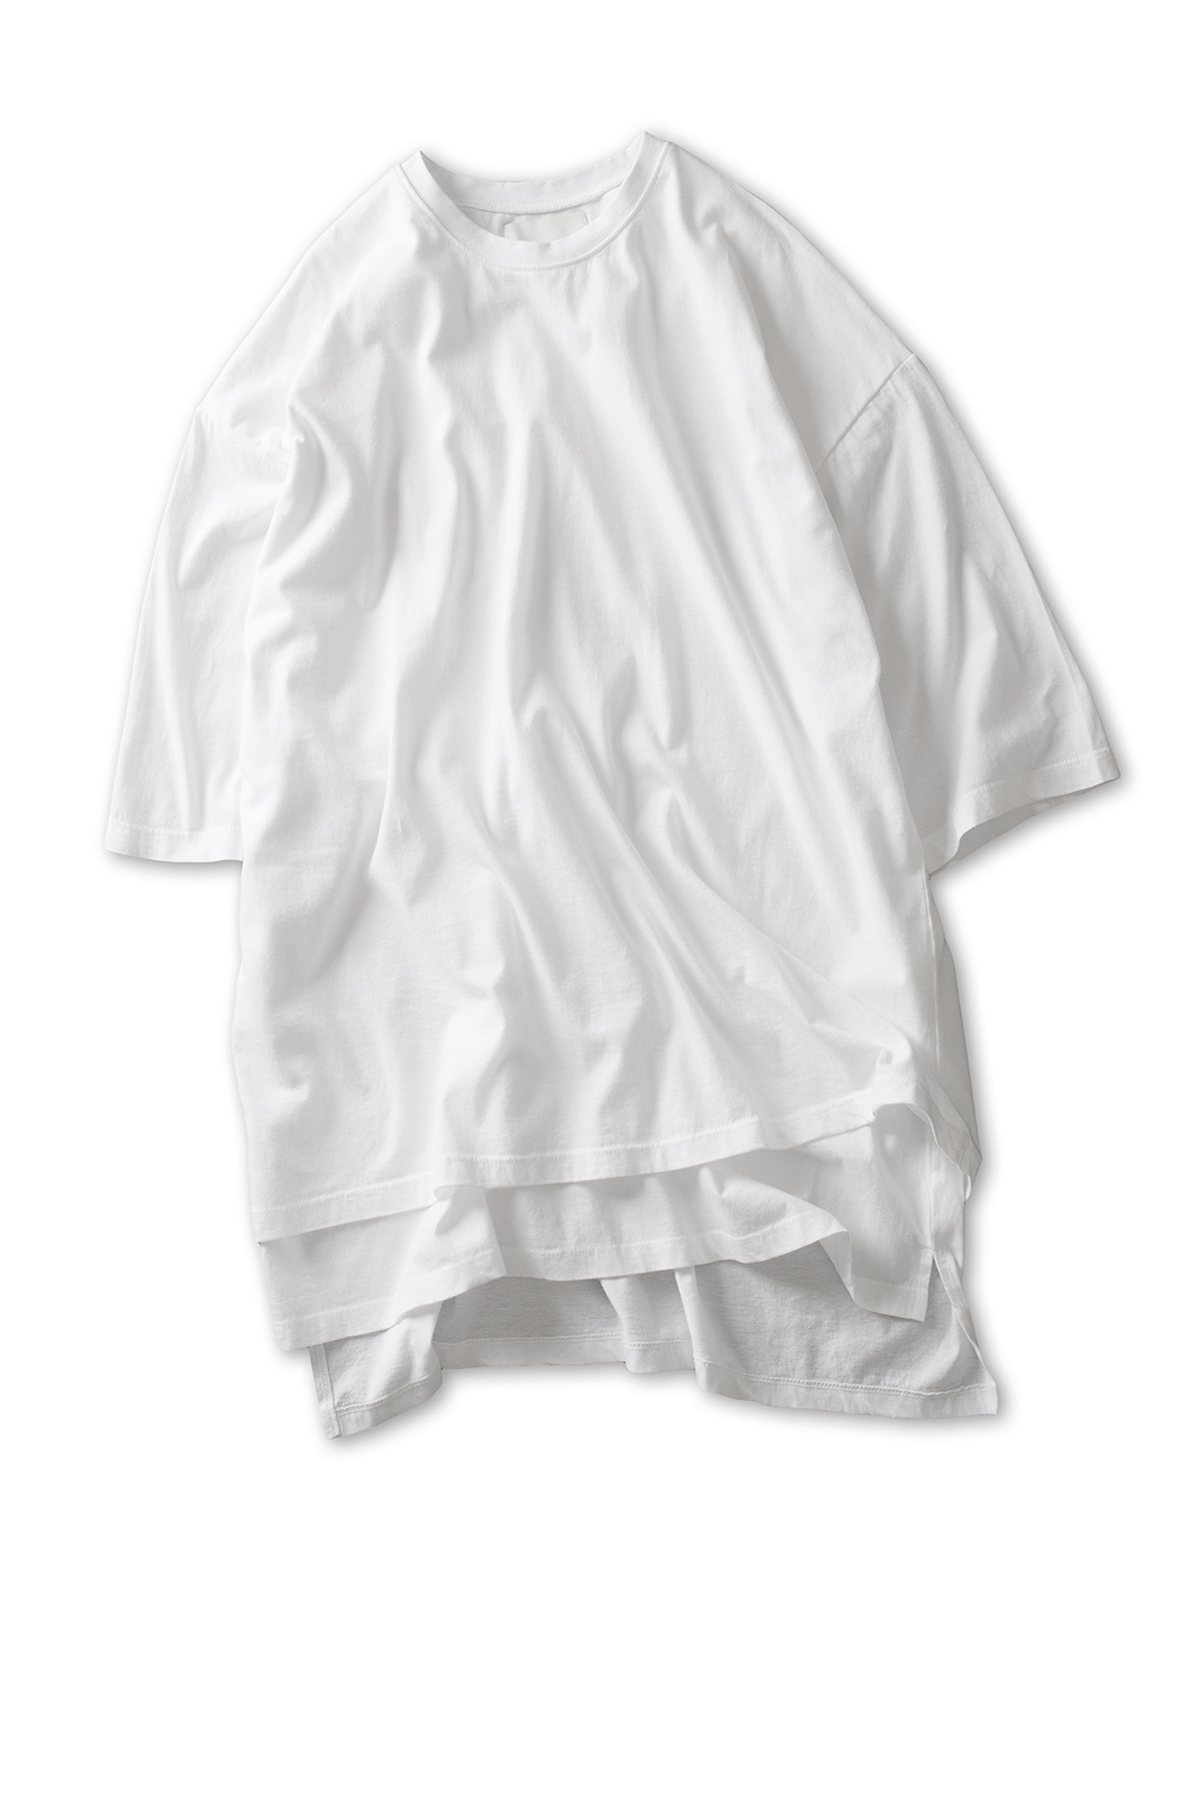 GAKURO : Layered Oversized S/S T-Shirt (White)